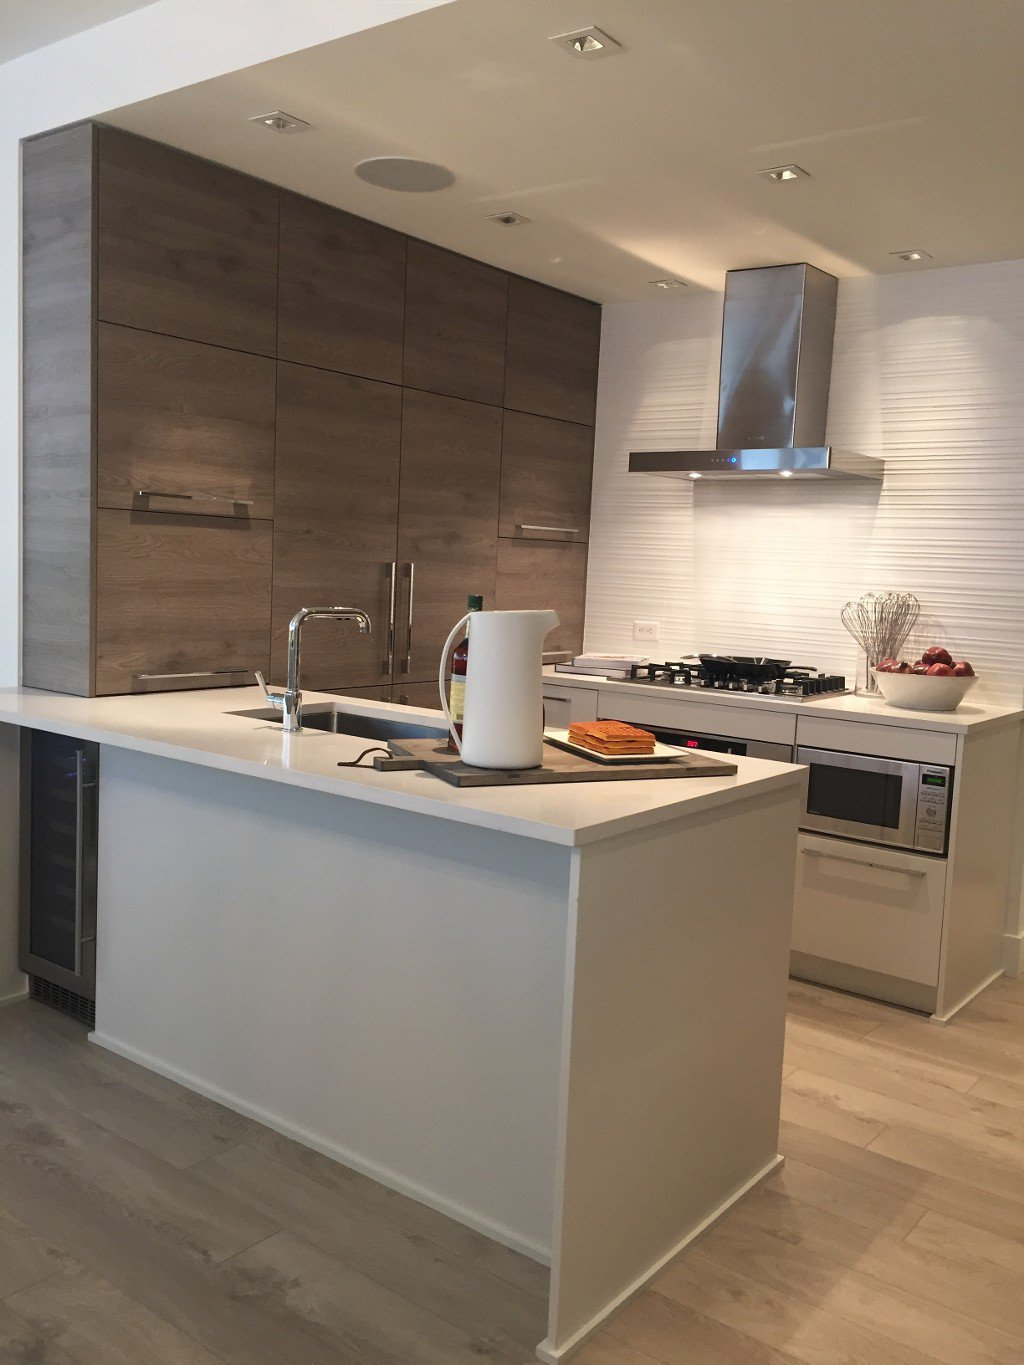 Main Photo: 711 7388 Kingsway in Burnaby: Condo for sale (Burnaby East)